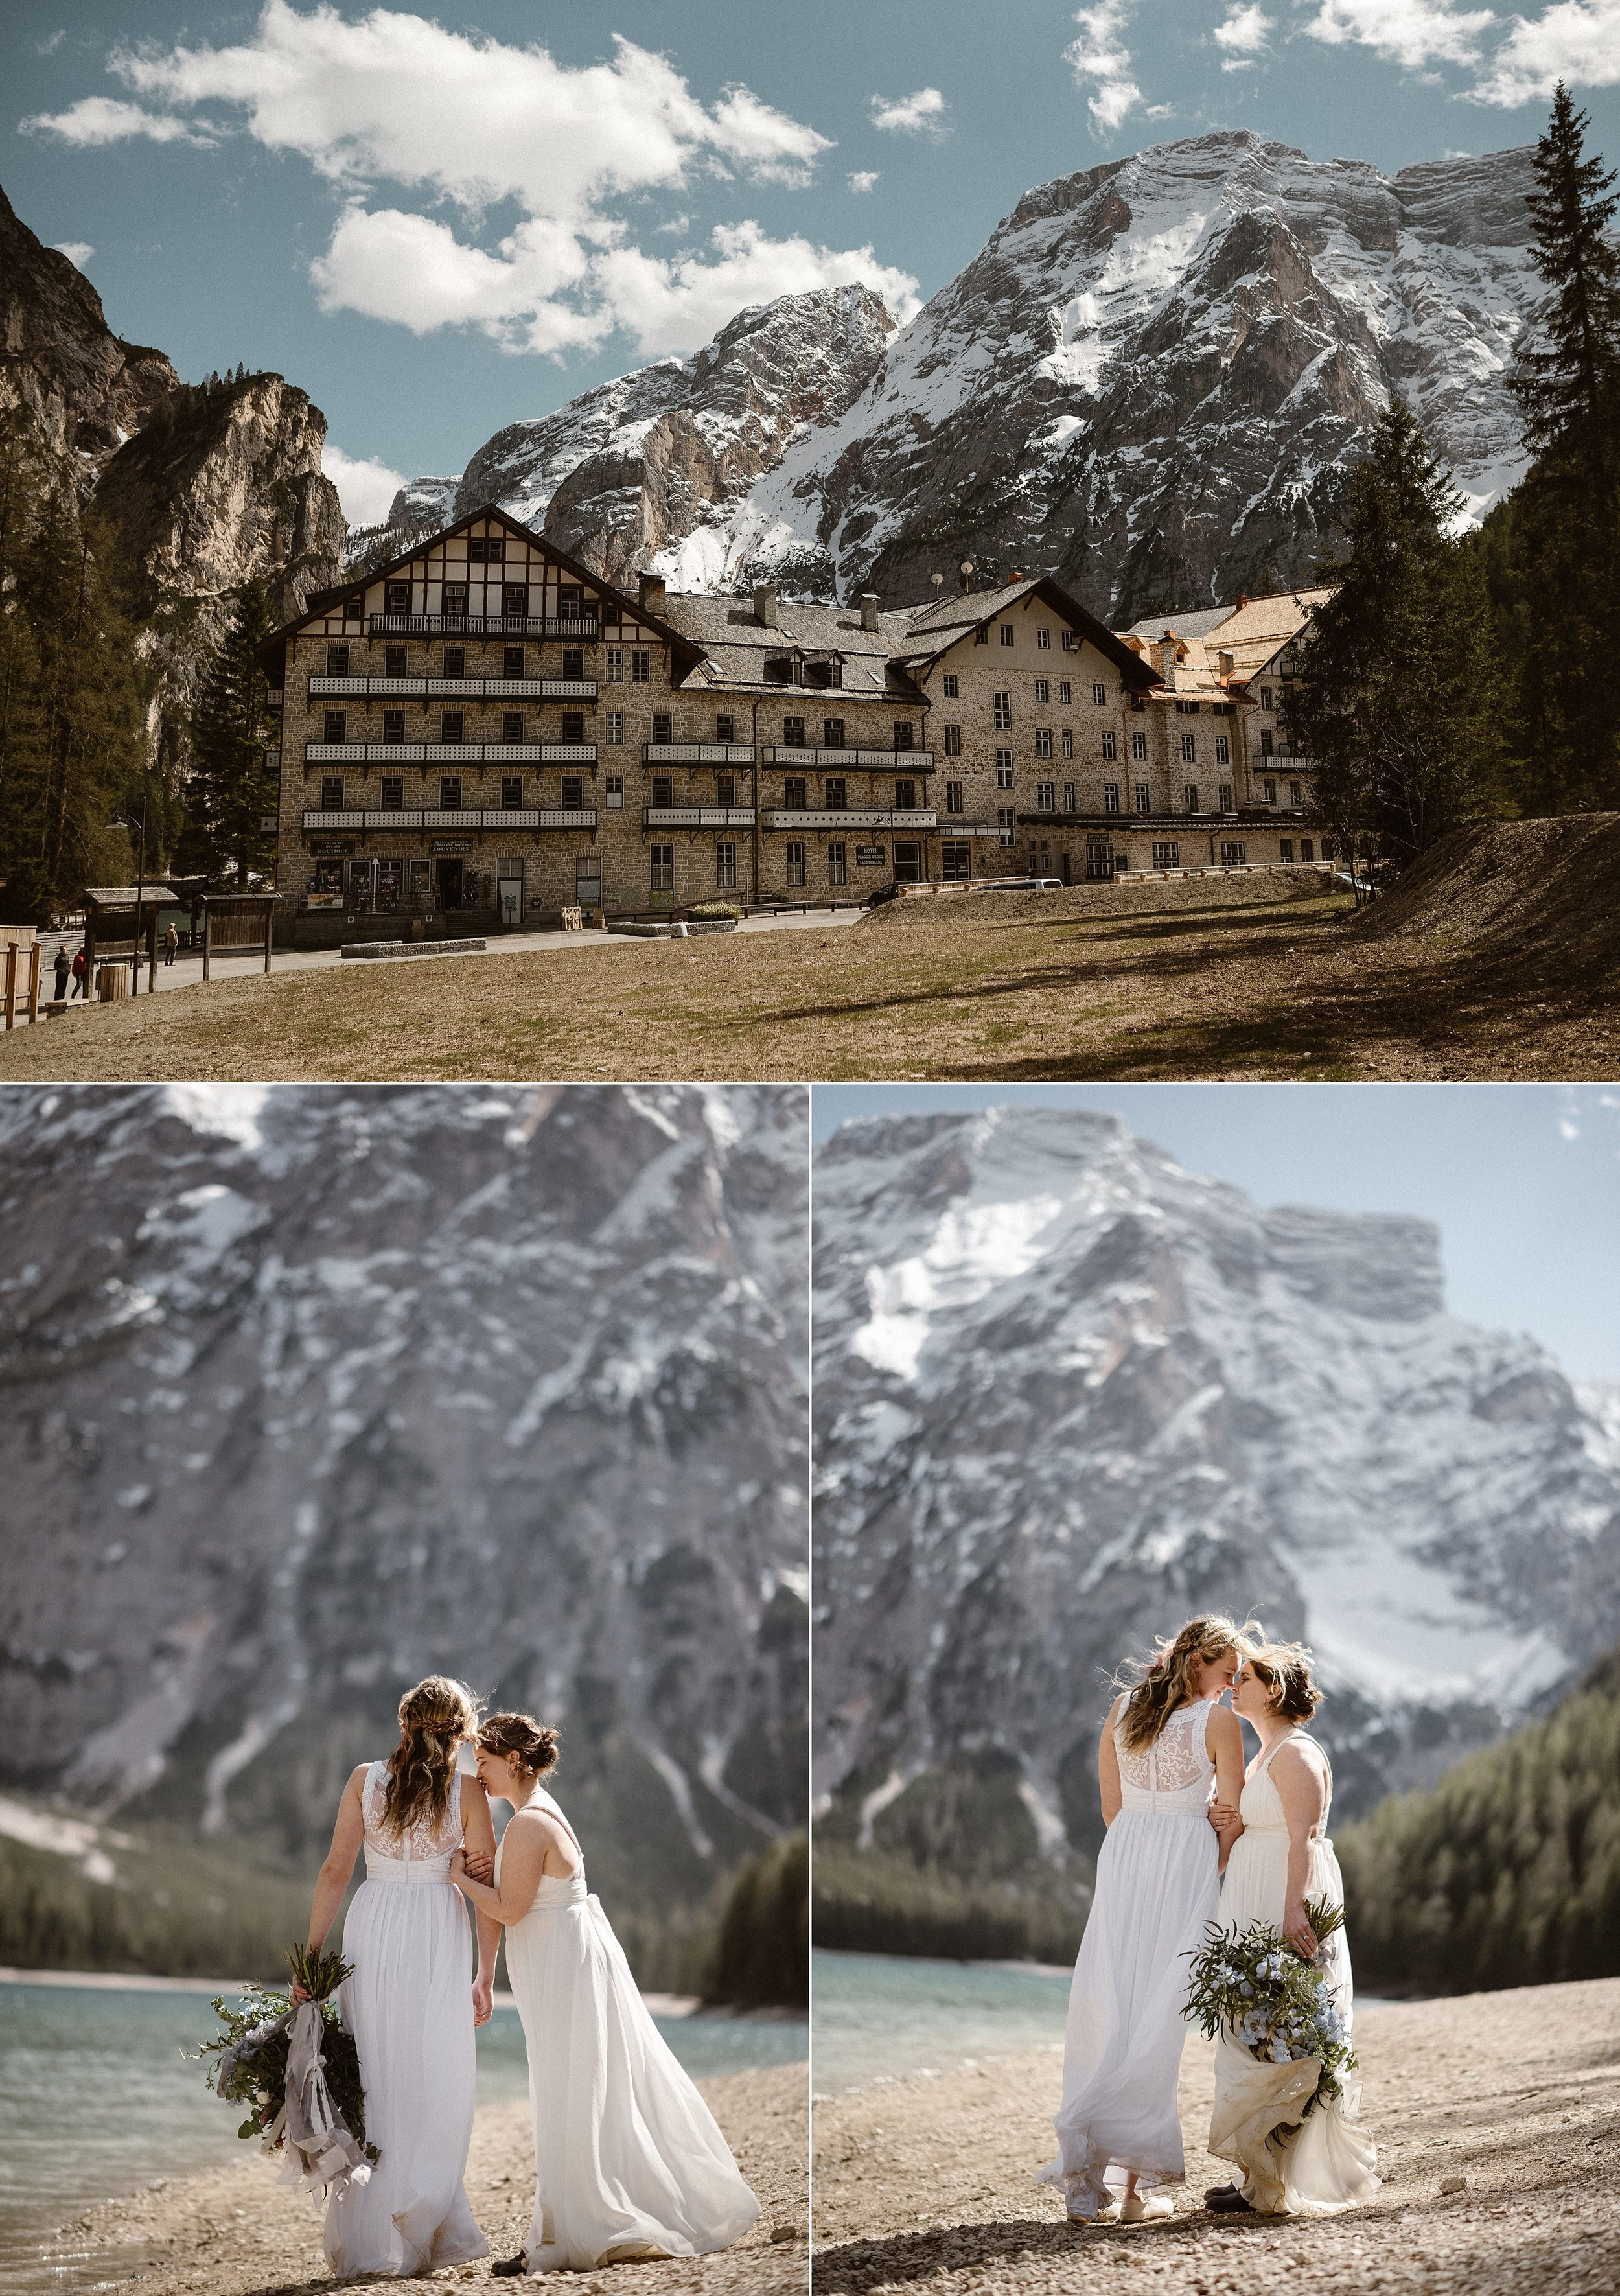 Taking in the sights, surrounded by the views of their dreams. These gorgeous brides picked the perfect spot along Lake Braise with the Dolomites behind them for their intimate elopement ceremony. Photos captured by traveling wedding photographer Maddie Mae.